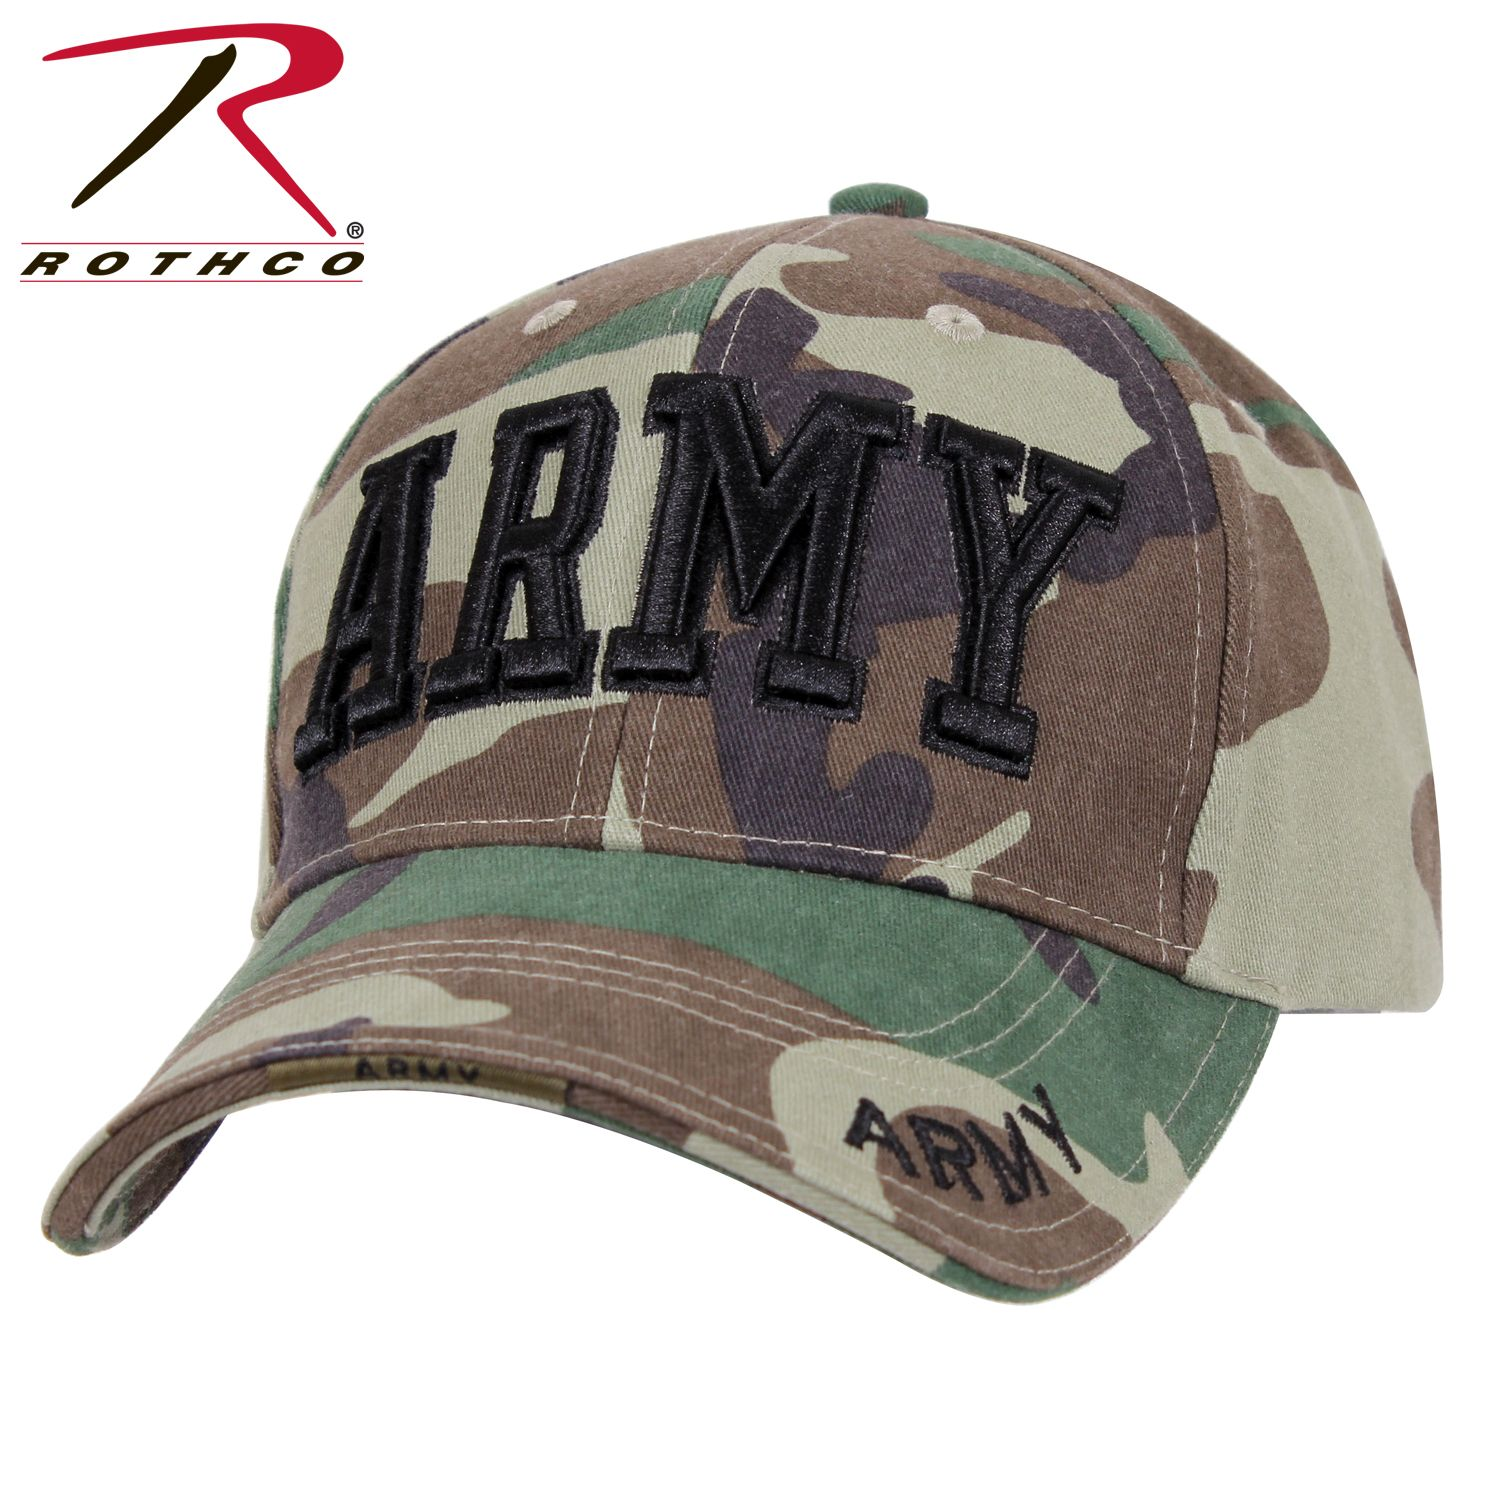 6b5a6355df0 Buy Rothco Deluxe Army Embroidered Low Profile Insignia Cap - Rothco ...